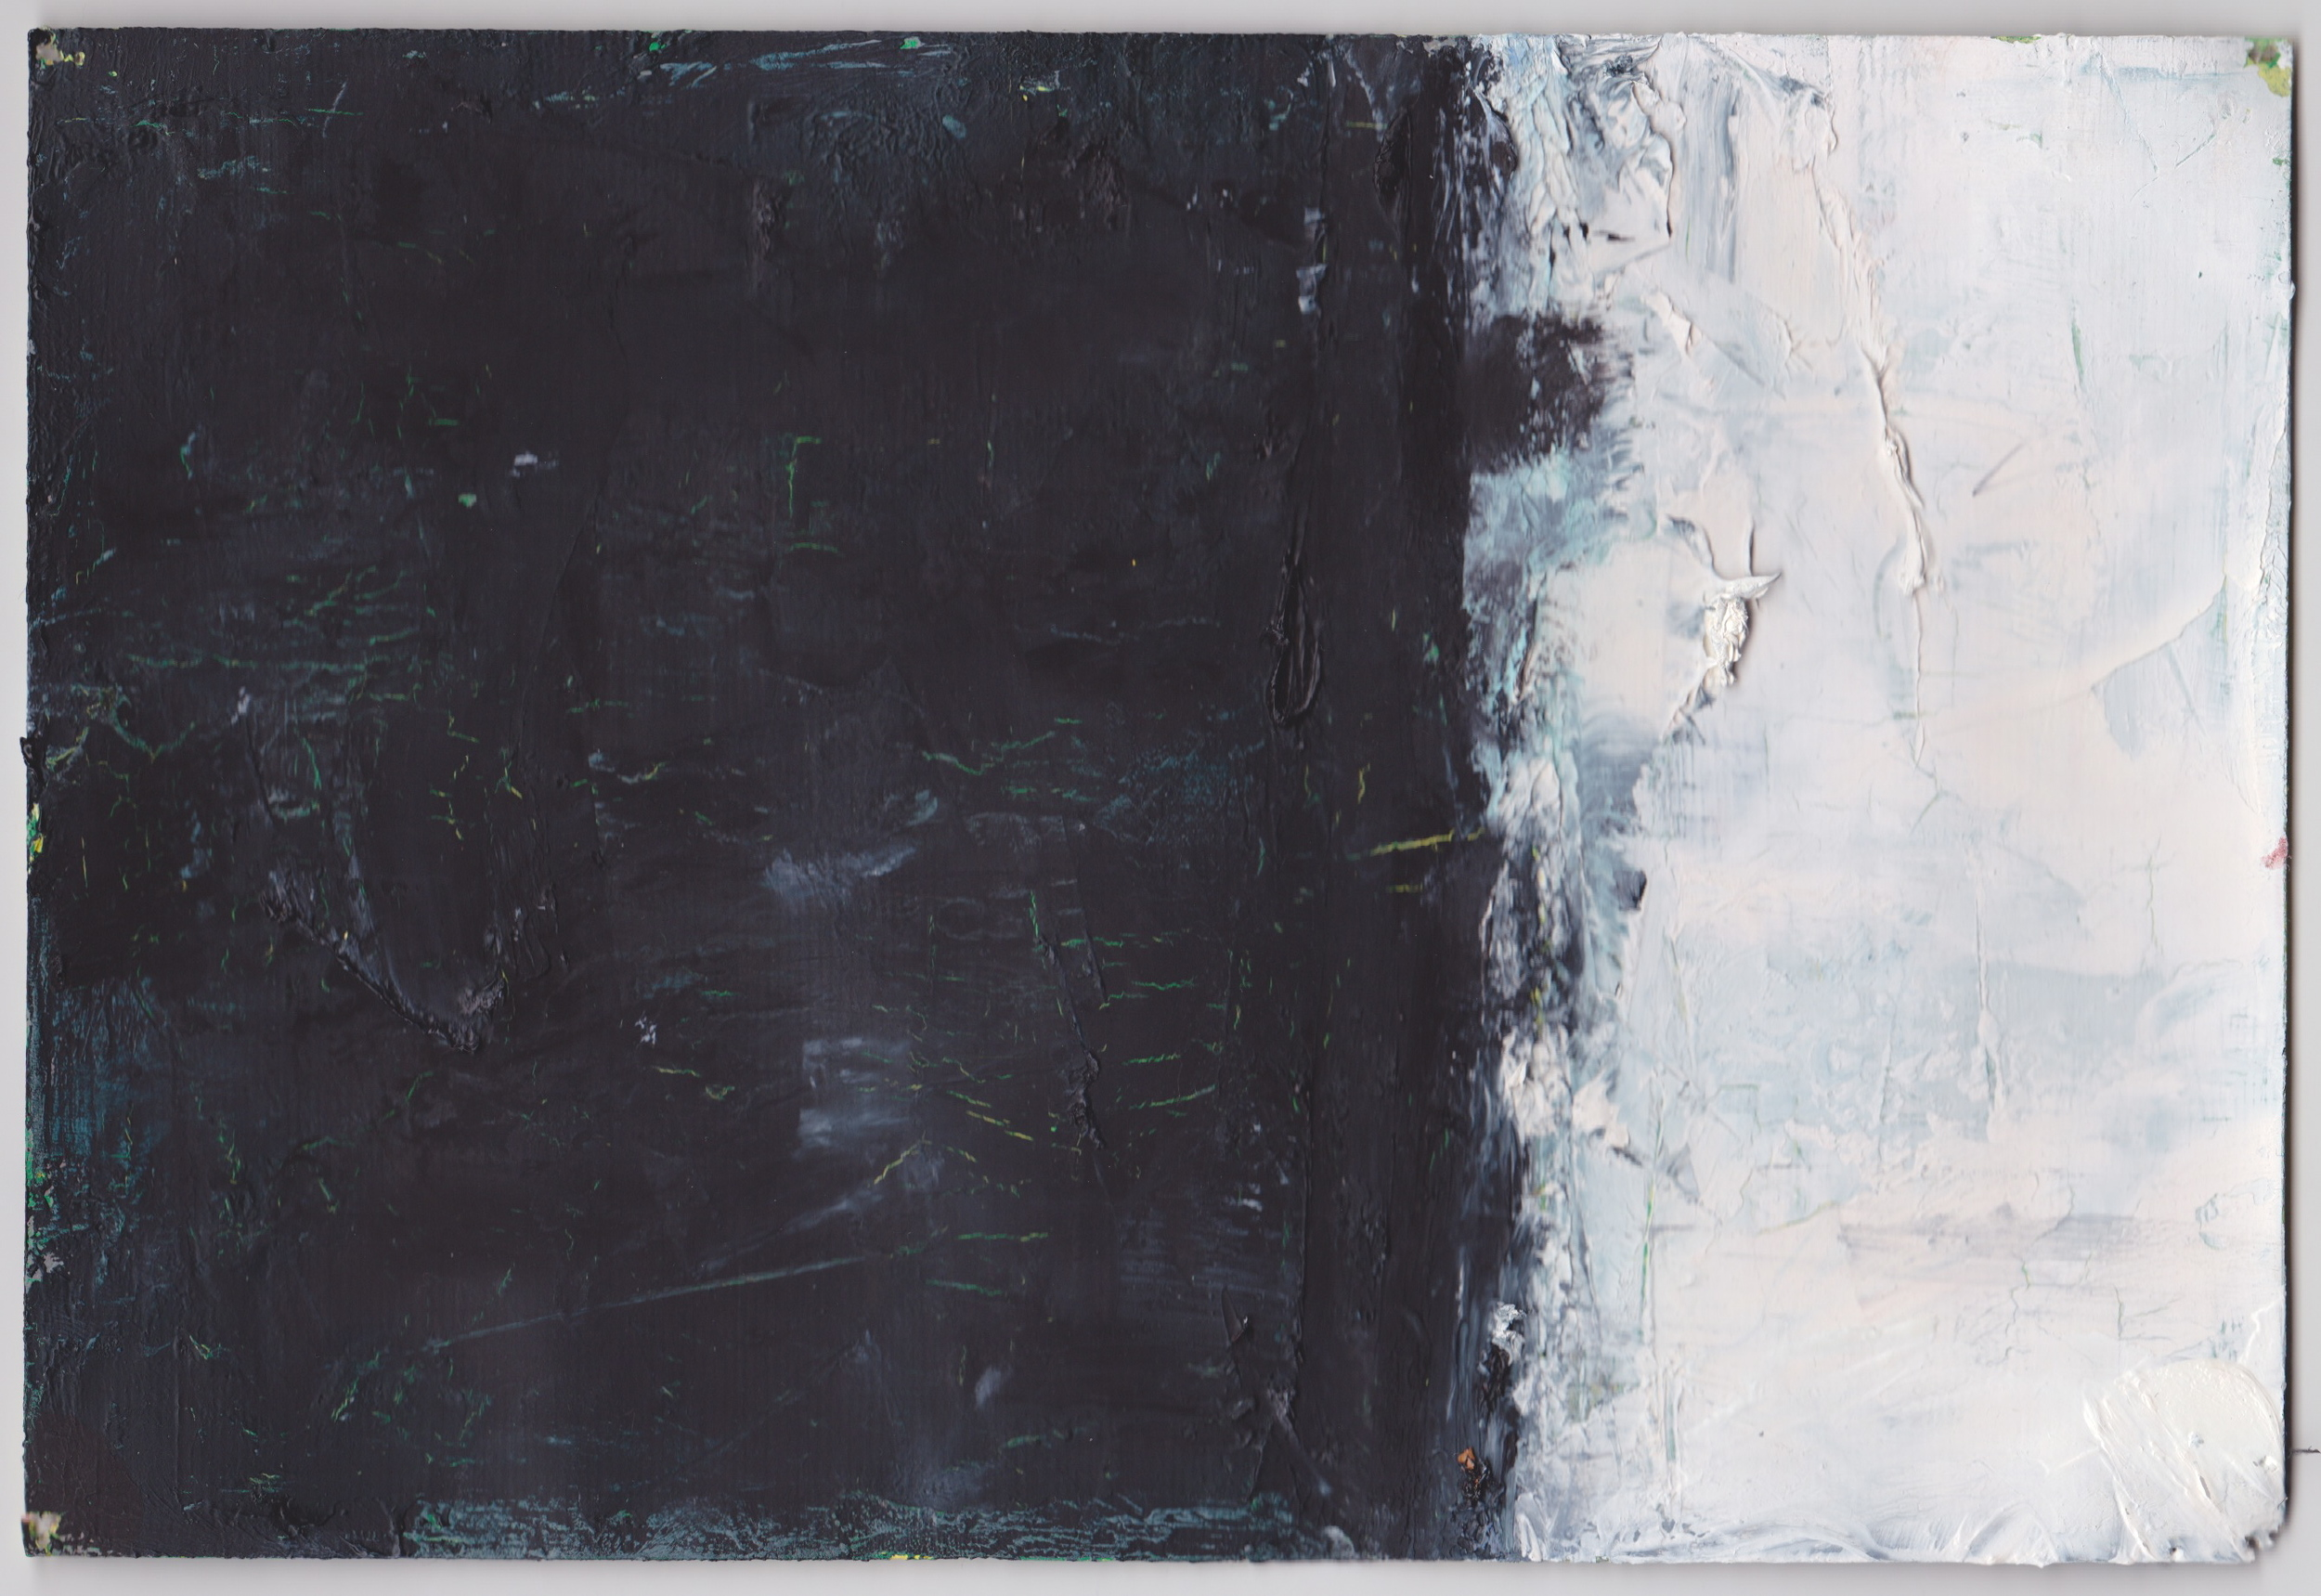 """Study for big black and white ptg ,2012, oil on canvas paper, 6"""" x 8.5"""""""